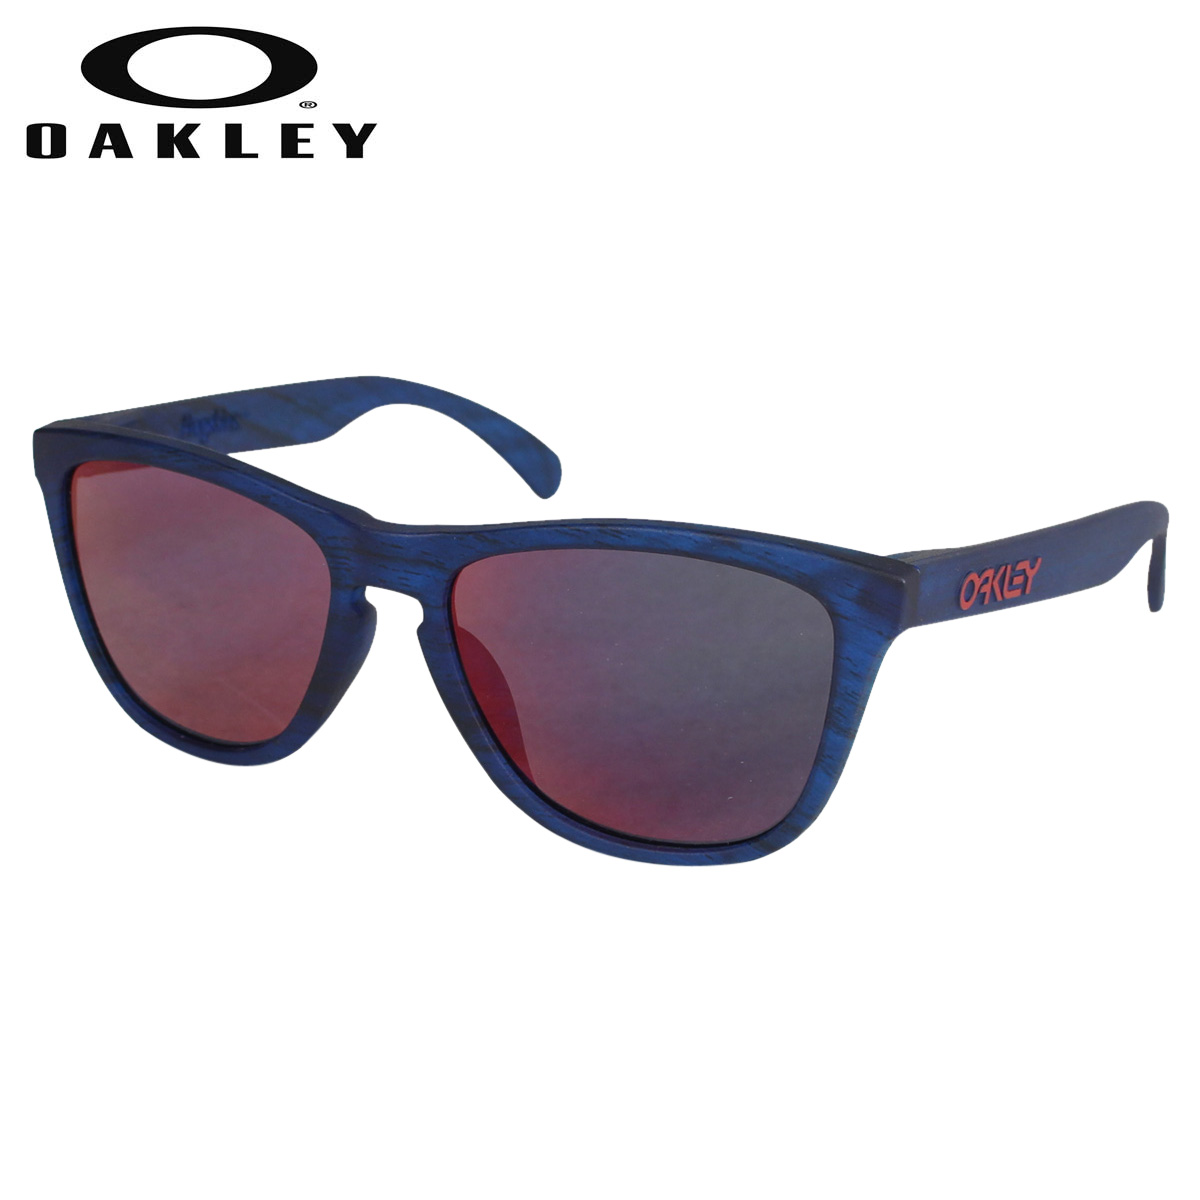 97d779348d ... coupon code oakley sunglasses horse mackerel ann fitting oakley  frogskins frog skin driftwood collection asia fit